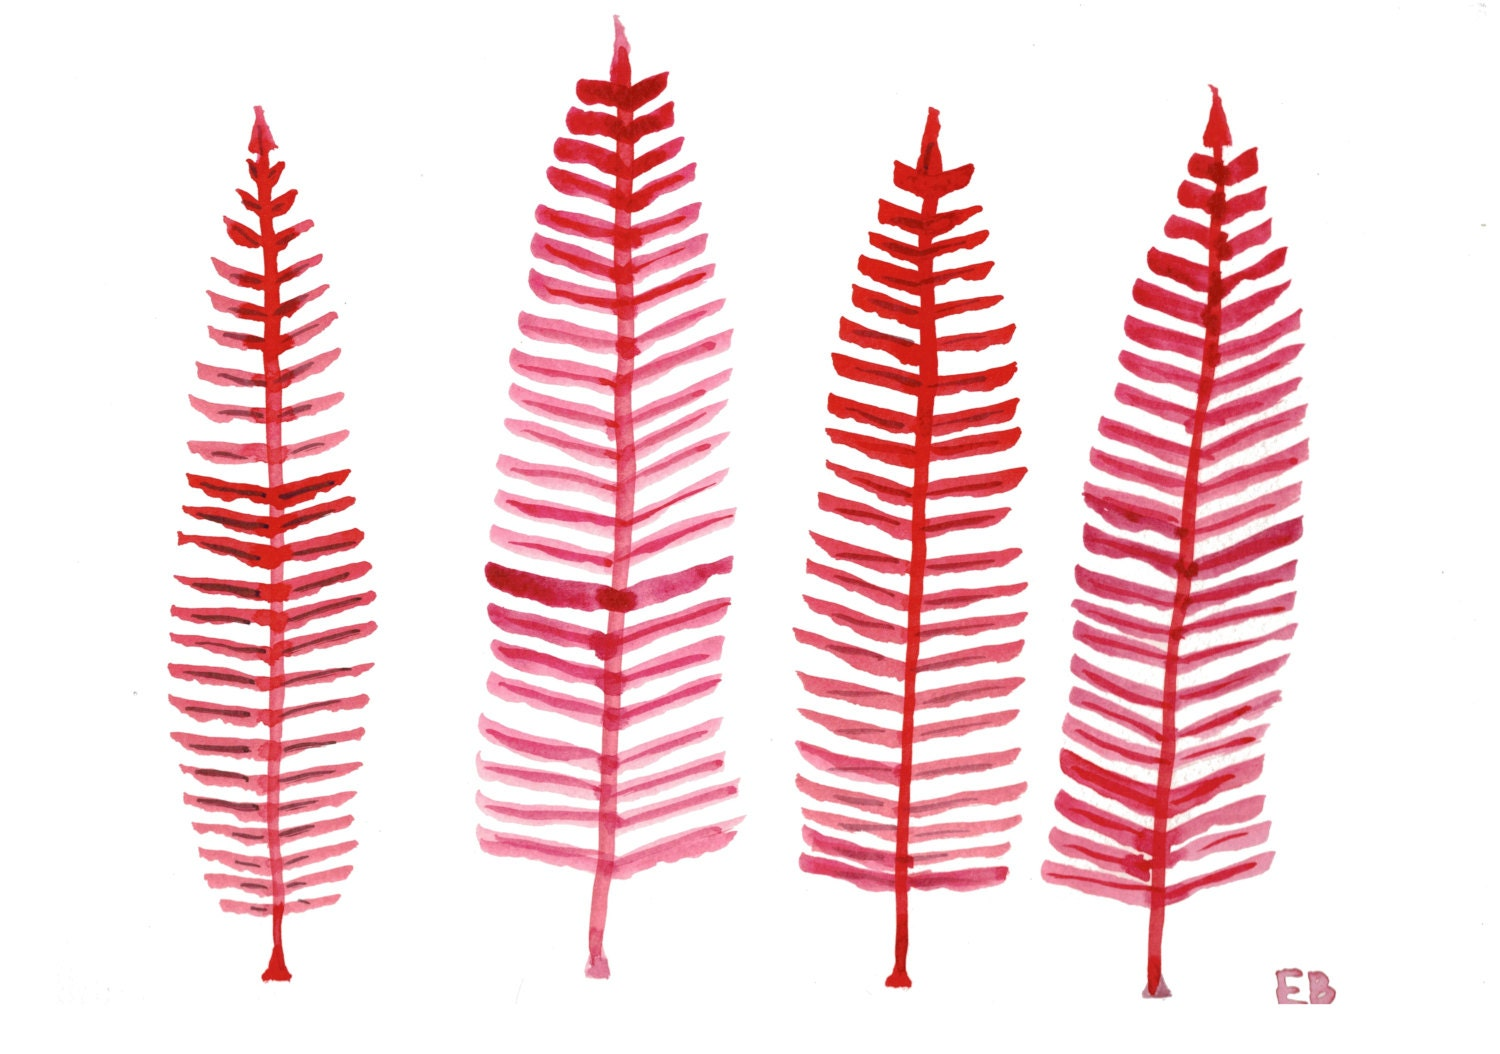 Original Red Ferns Painting, Red Watercolor Ferns with hues of pink, Fall leaves Ink Drawing - WishlistArt